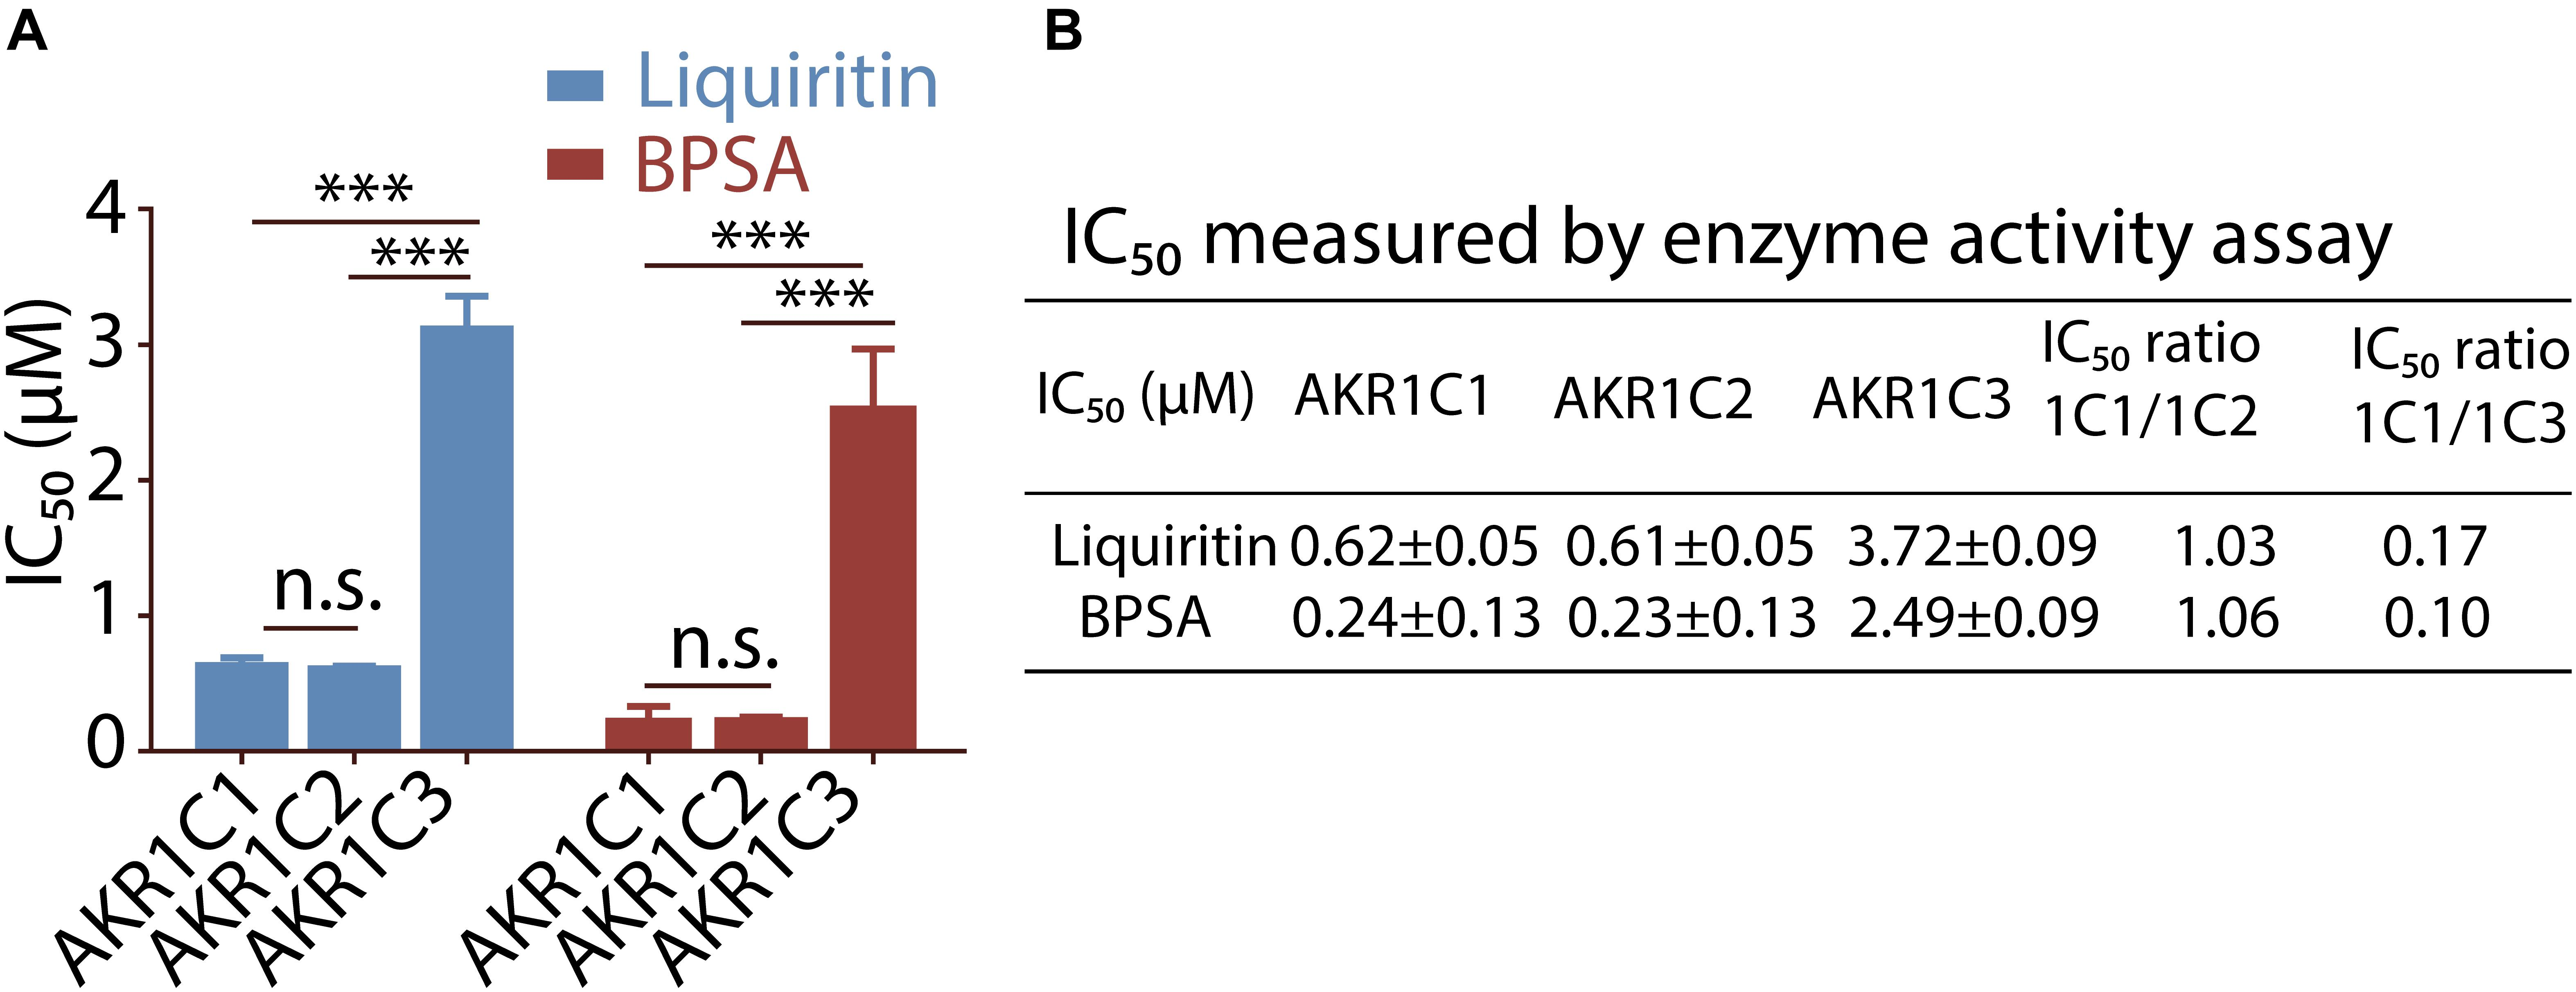 Frontiers | Liquiritin, as a Natural Inhibitor of AKR1C1